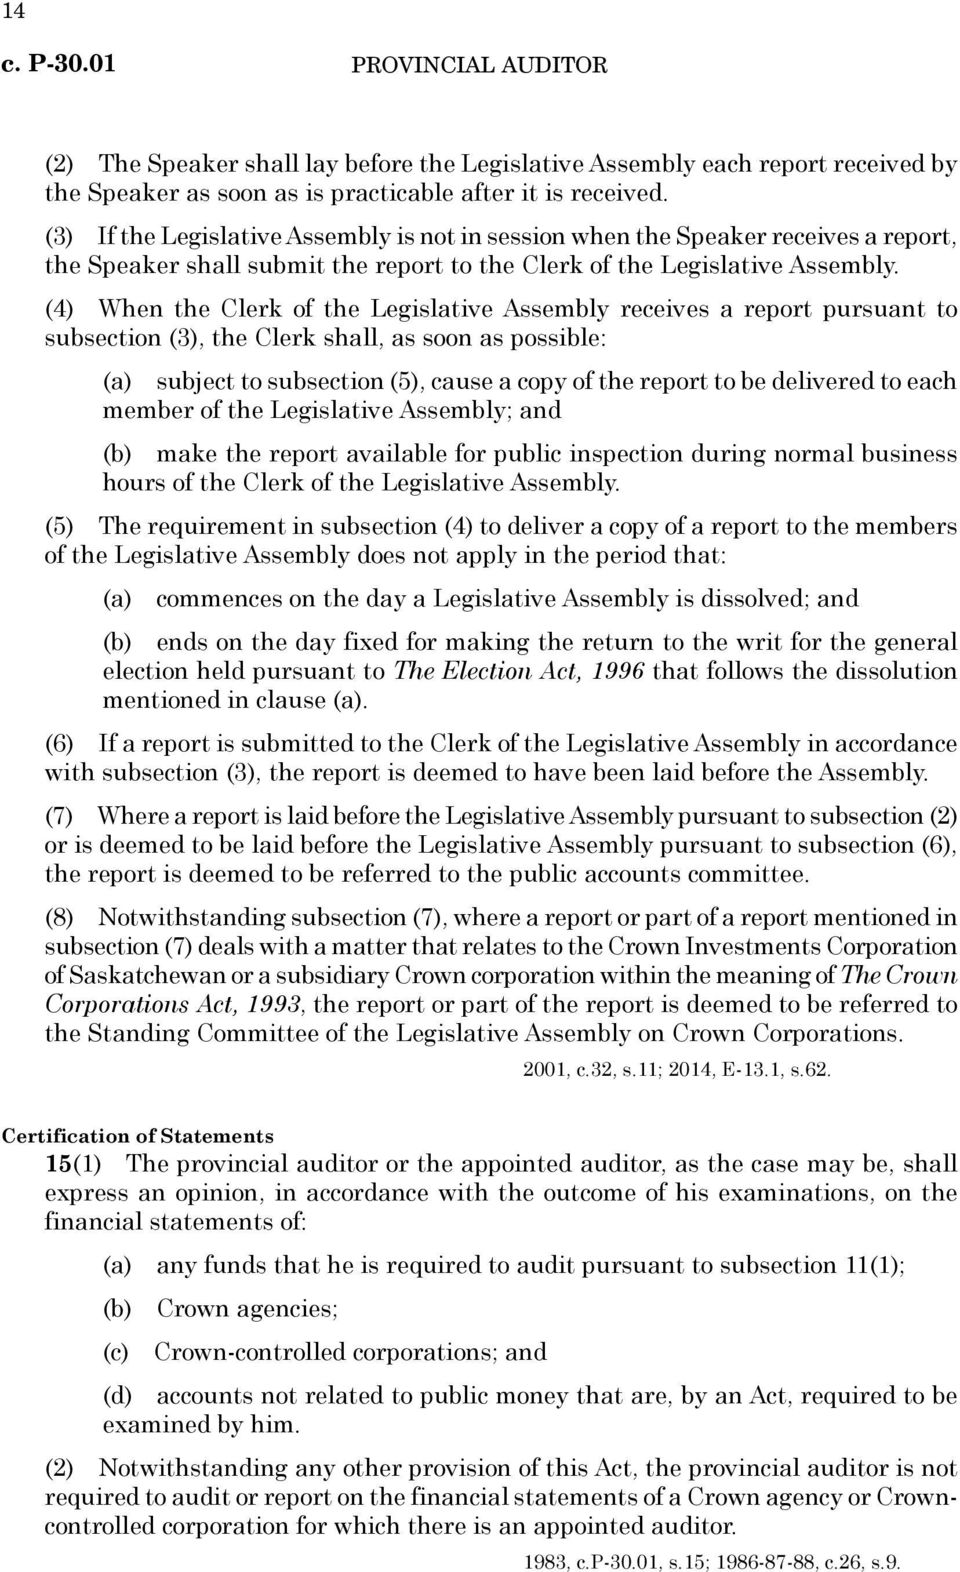 (4) When the Clerk of the Legislative Assembly receives a report pursuant to subsection (3), the Clerk shall, as soon as possible: (a) subject to subsection (5), cause a copy of the report to be